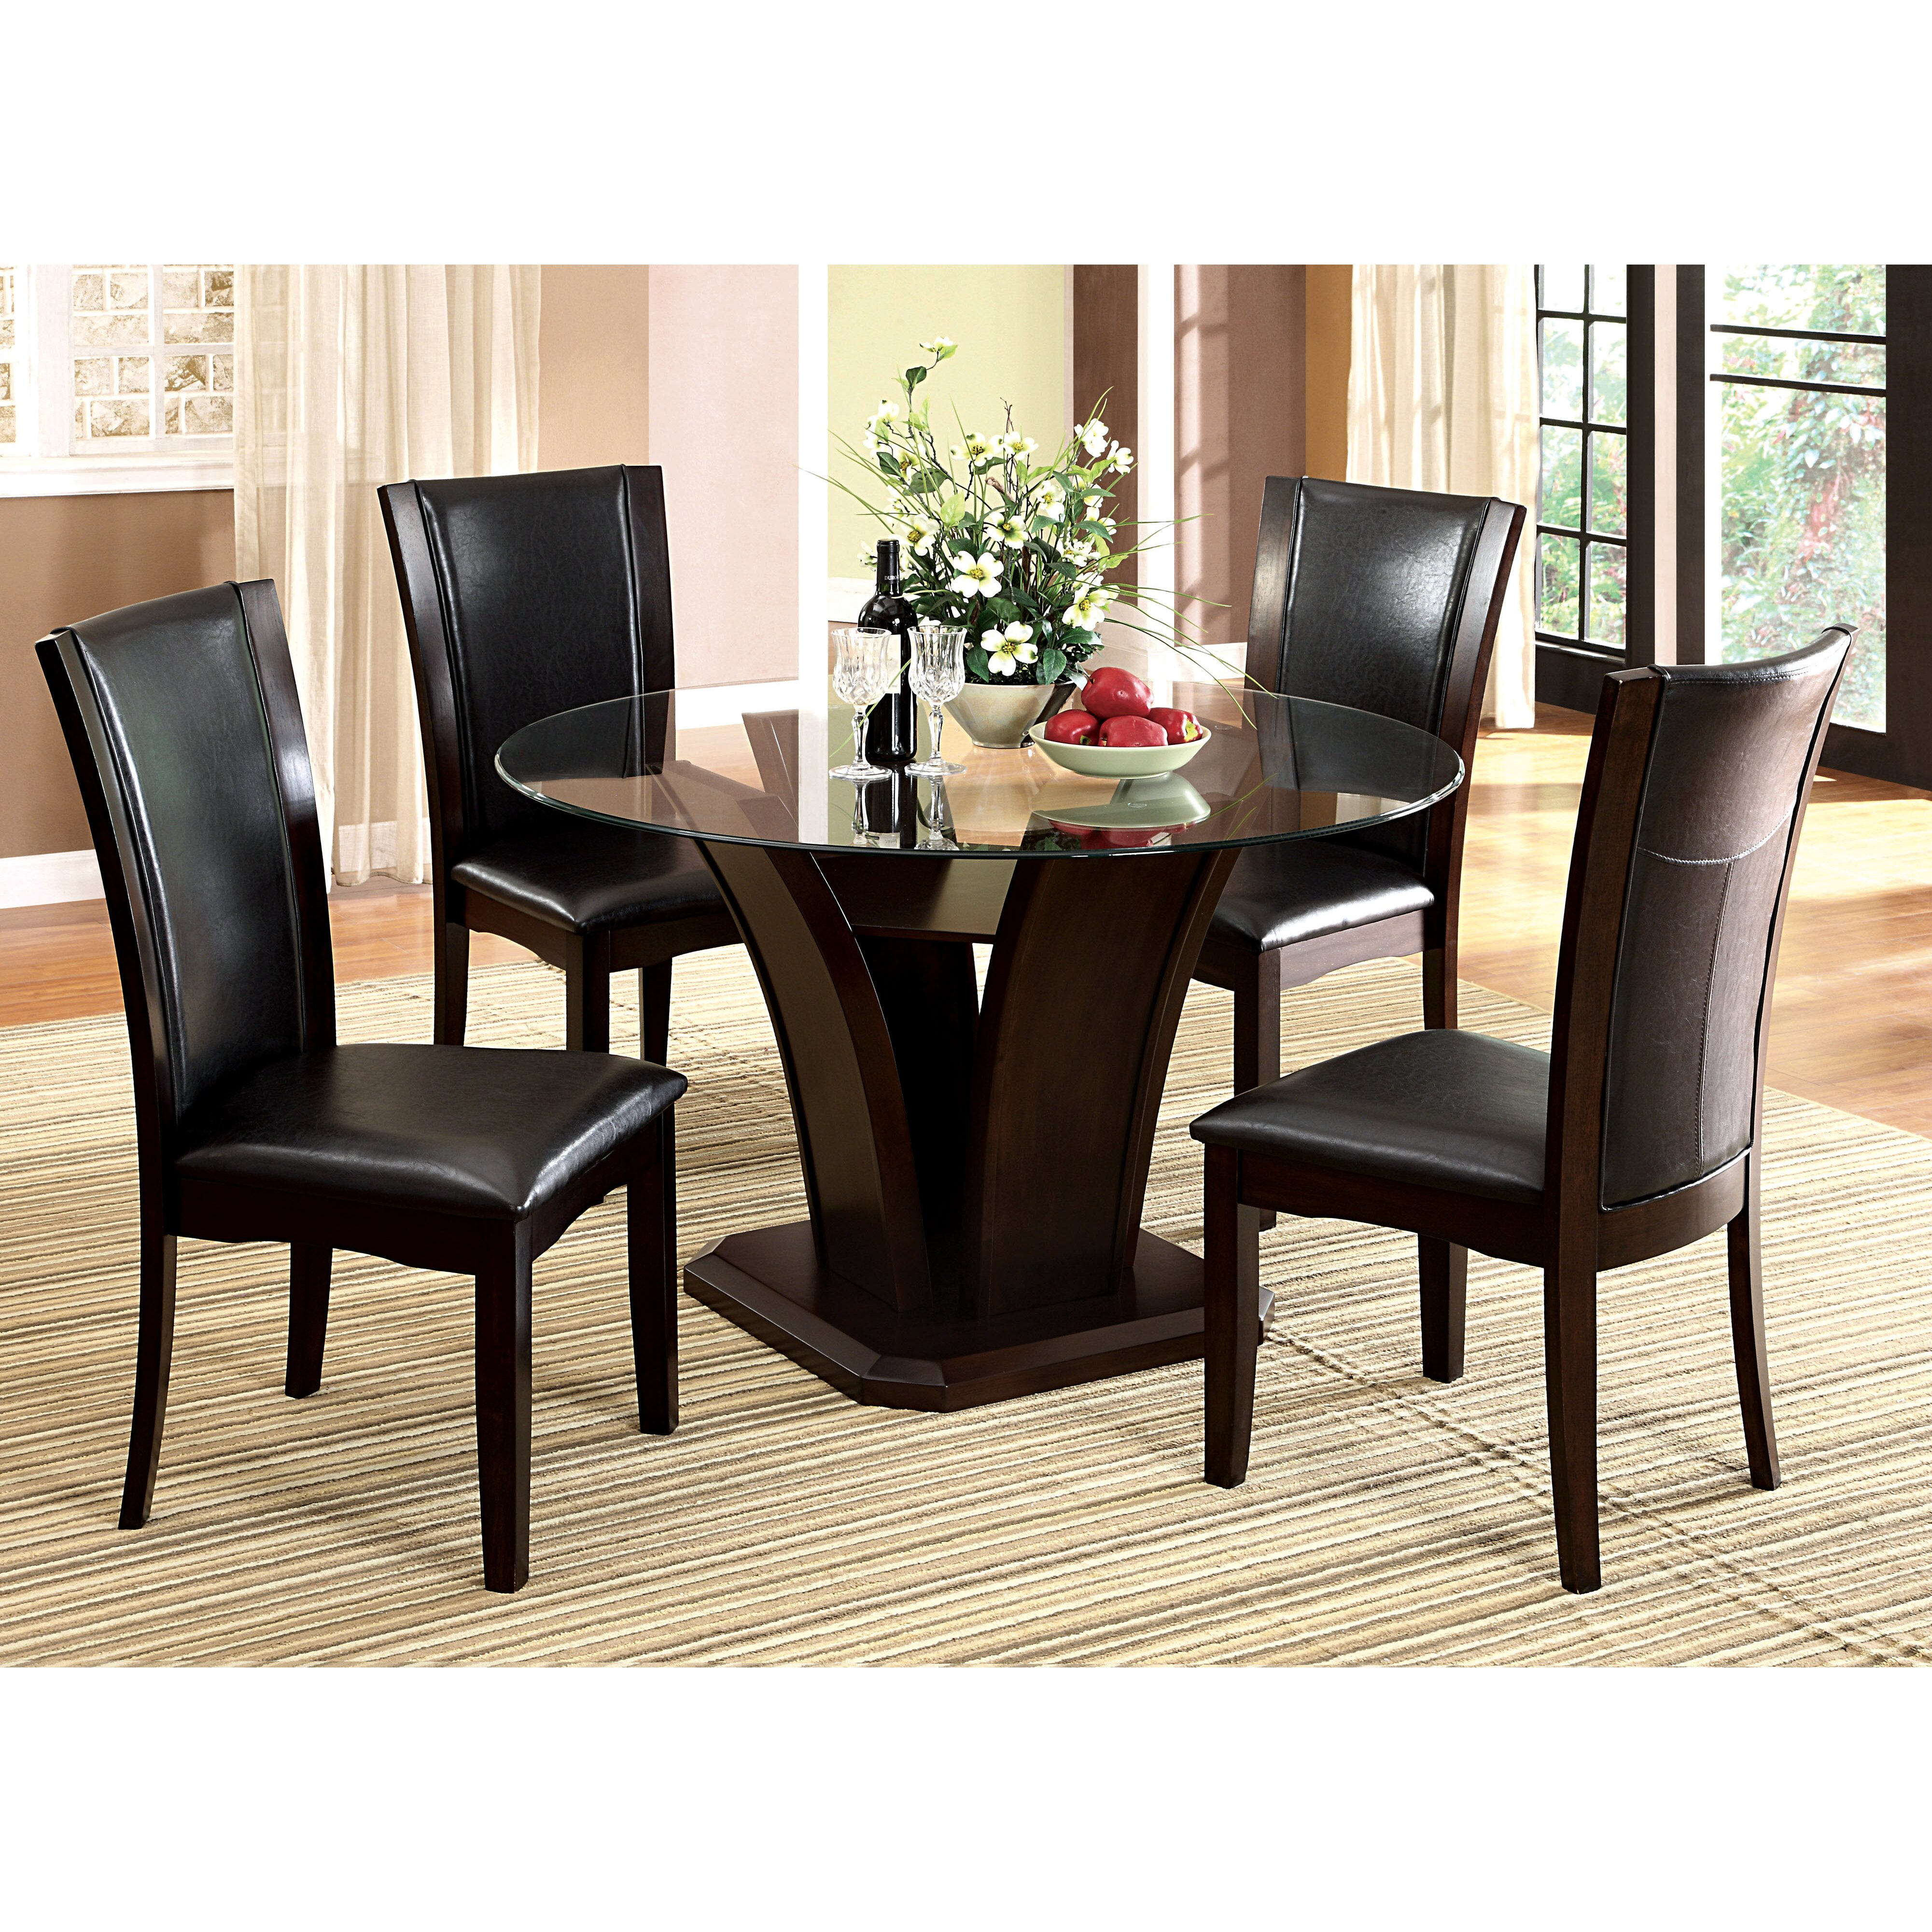 Hokku designs 5 piece dining set reviews wayfair Dining set design ideas